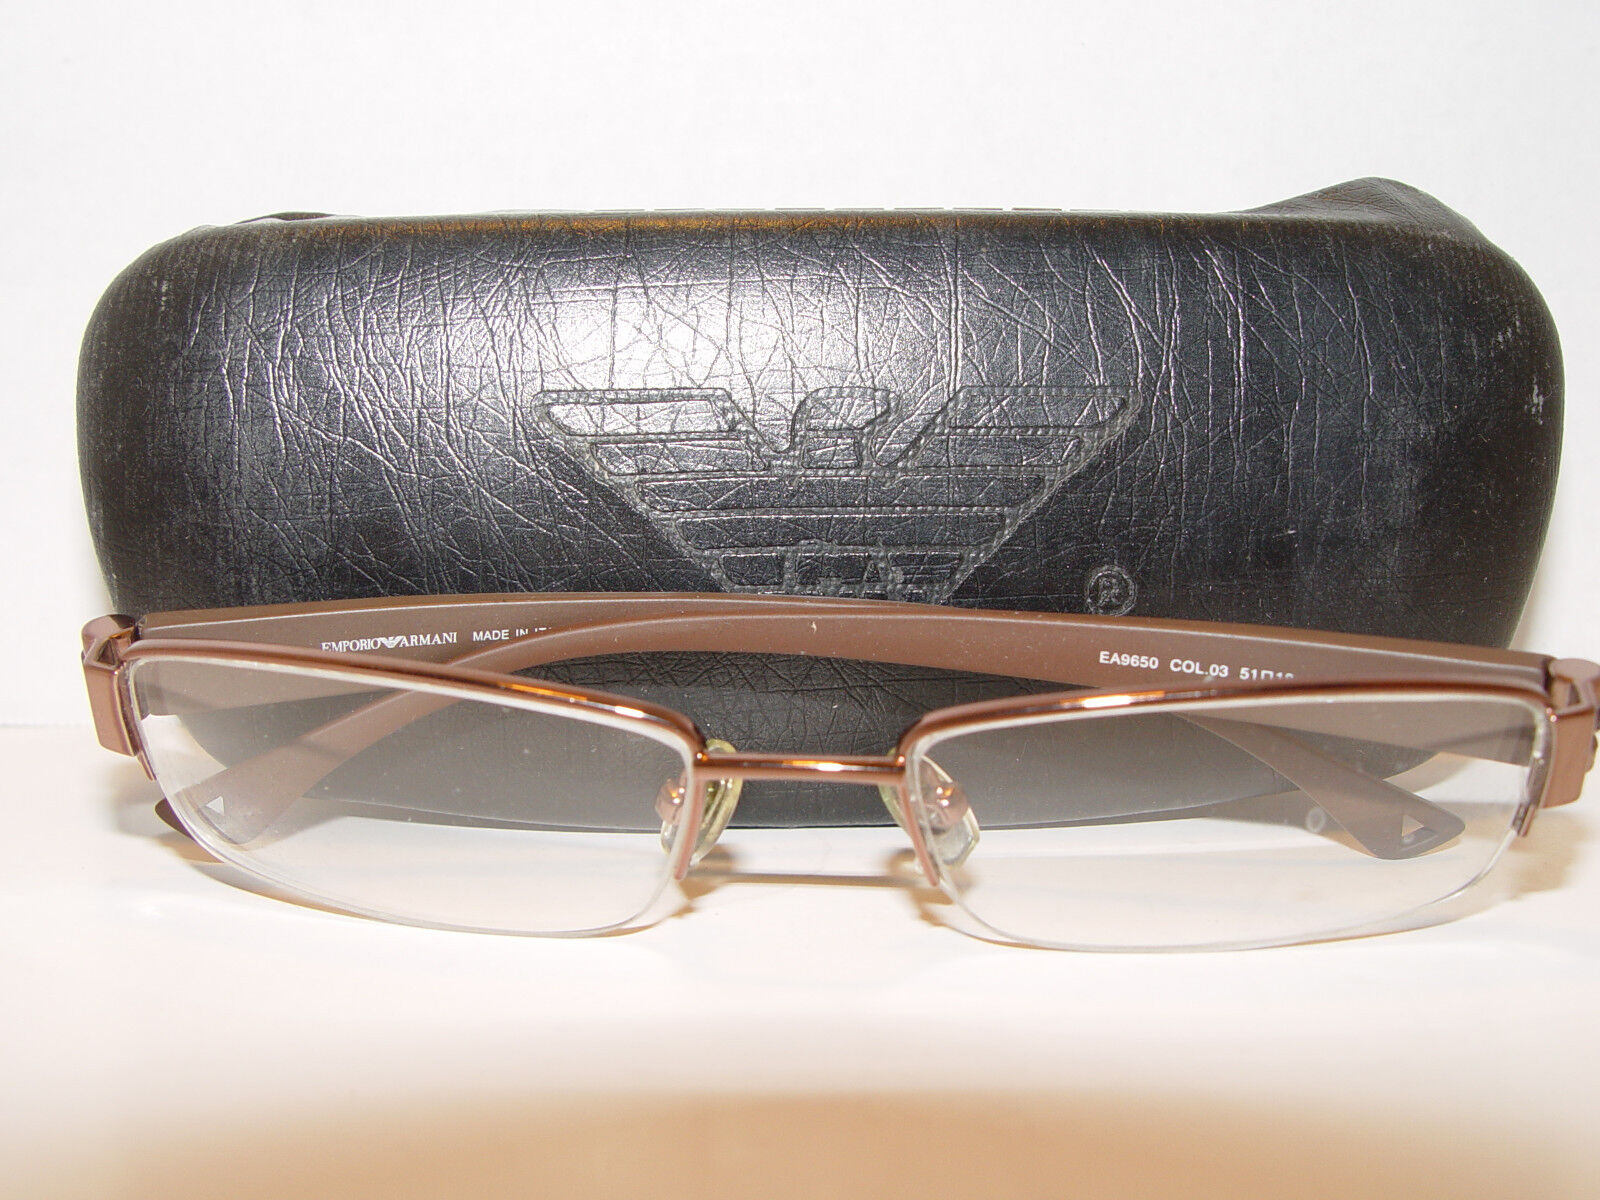 Emporio Armani Eyeglasses EA  9650 EA9650 COL.03 Brown 51mm 18mm Made In   we take customers as our god